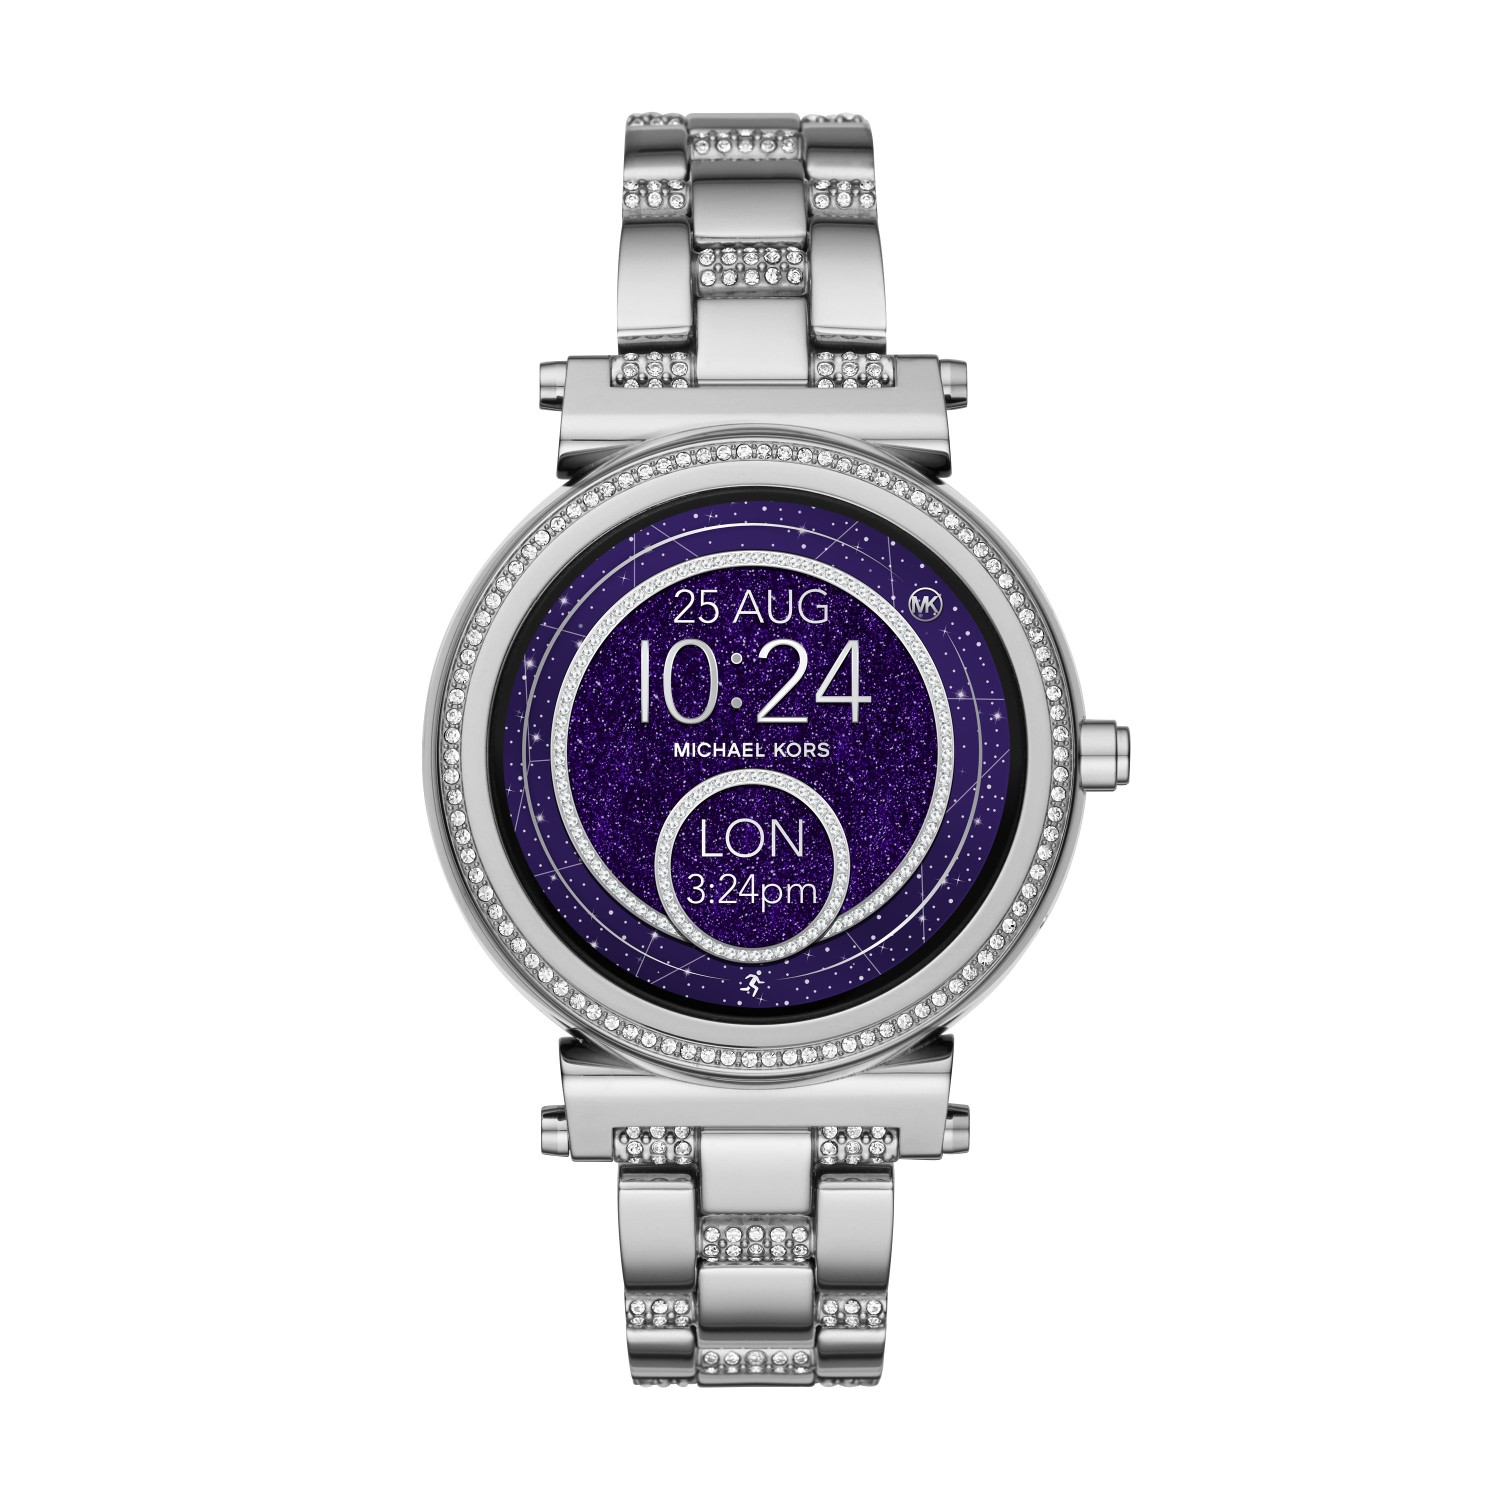 3853f2dfc1c Fossil is betting big on fashion-focused Android Wear watches in ...